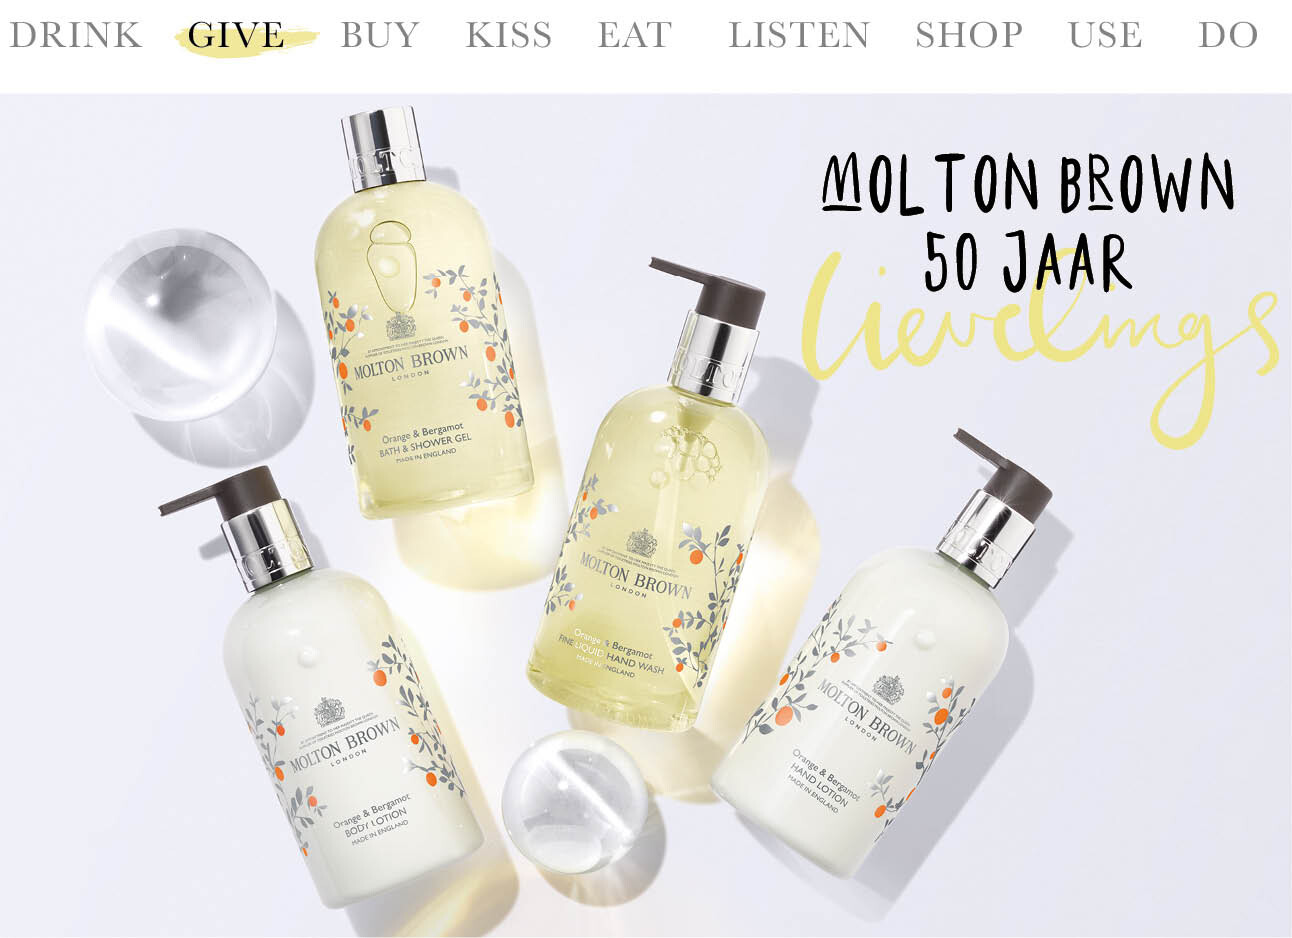 Molton Brown 50 jaar limited edtion Orange & Bergamot